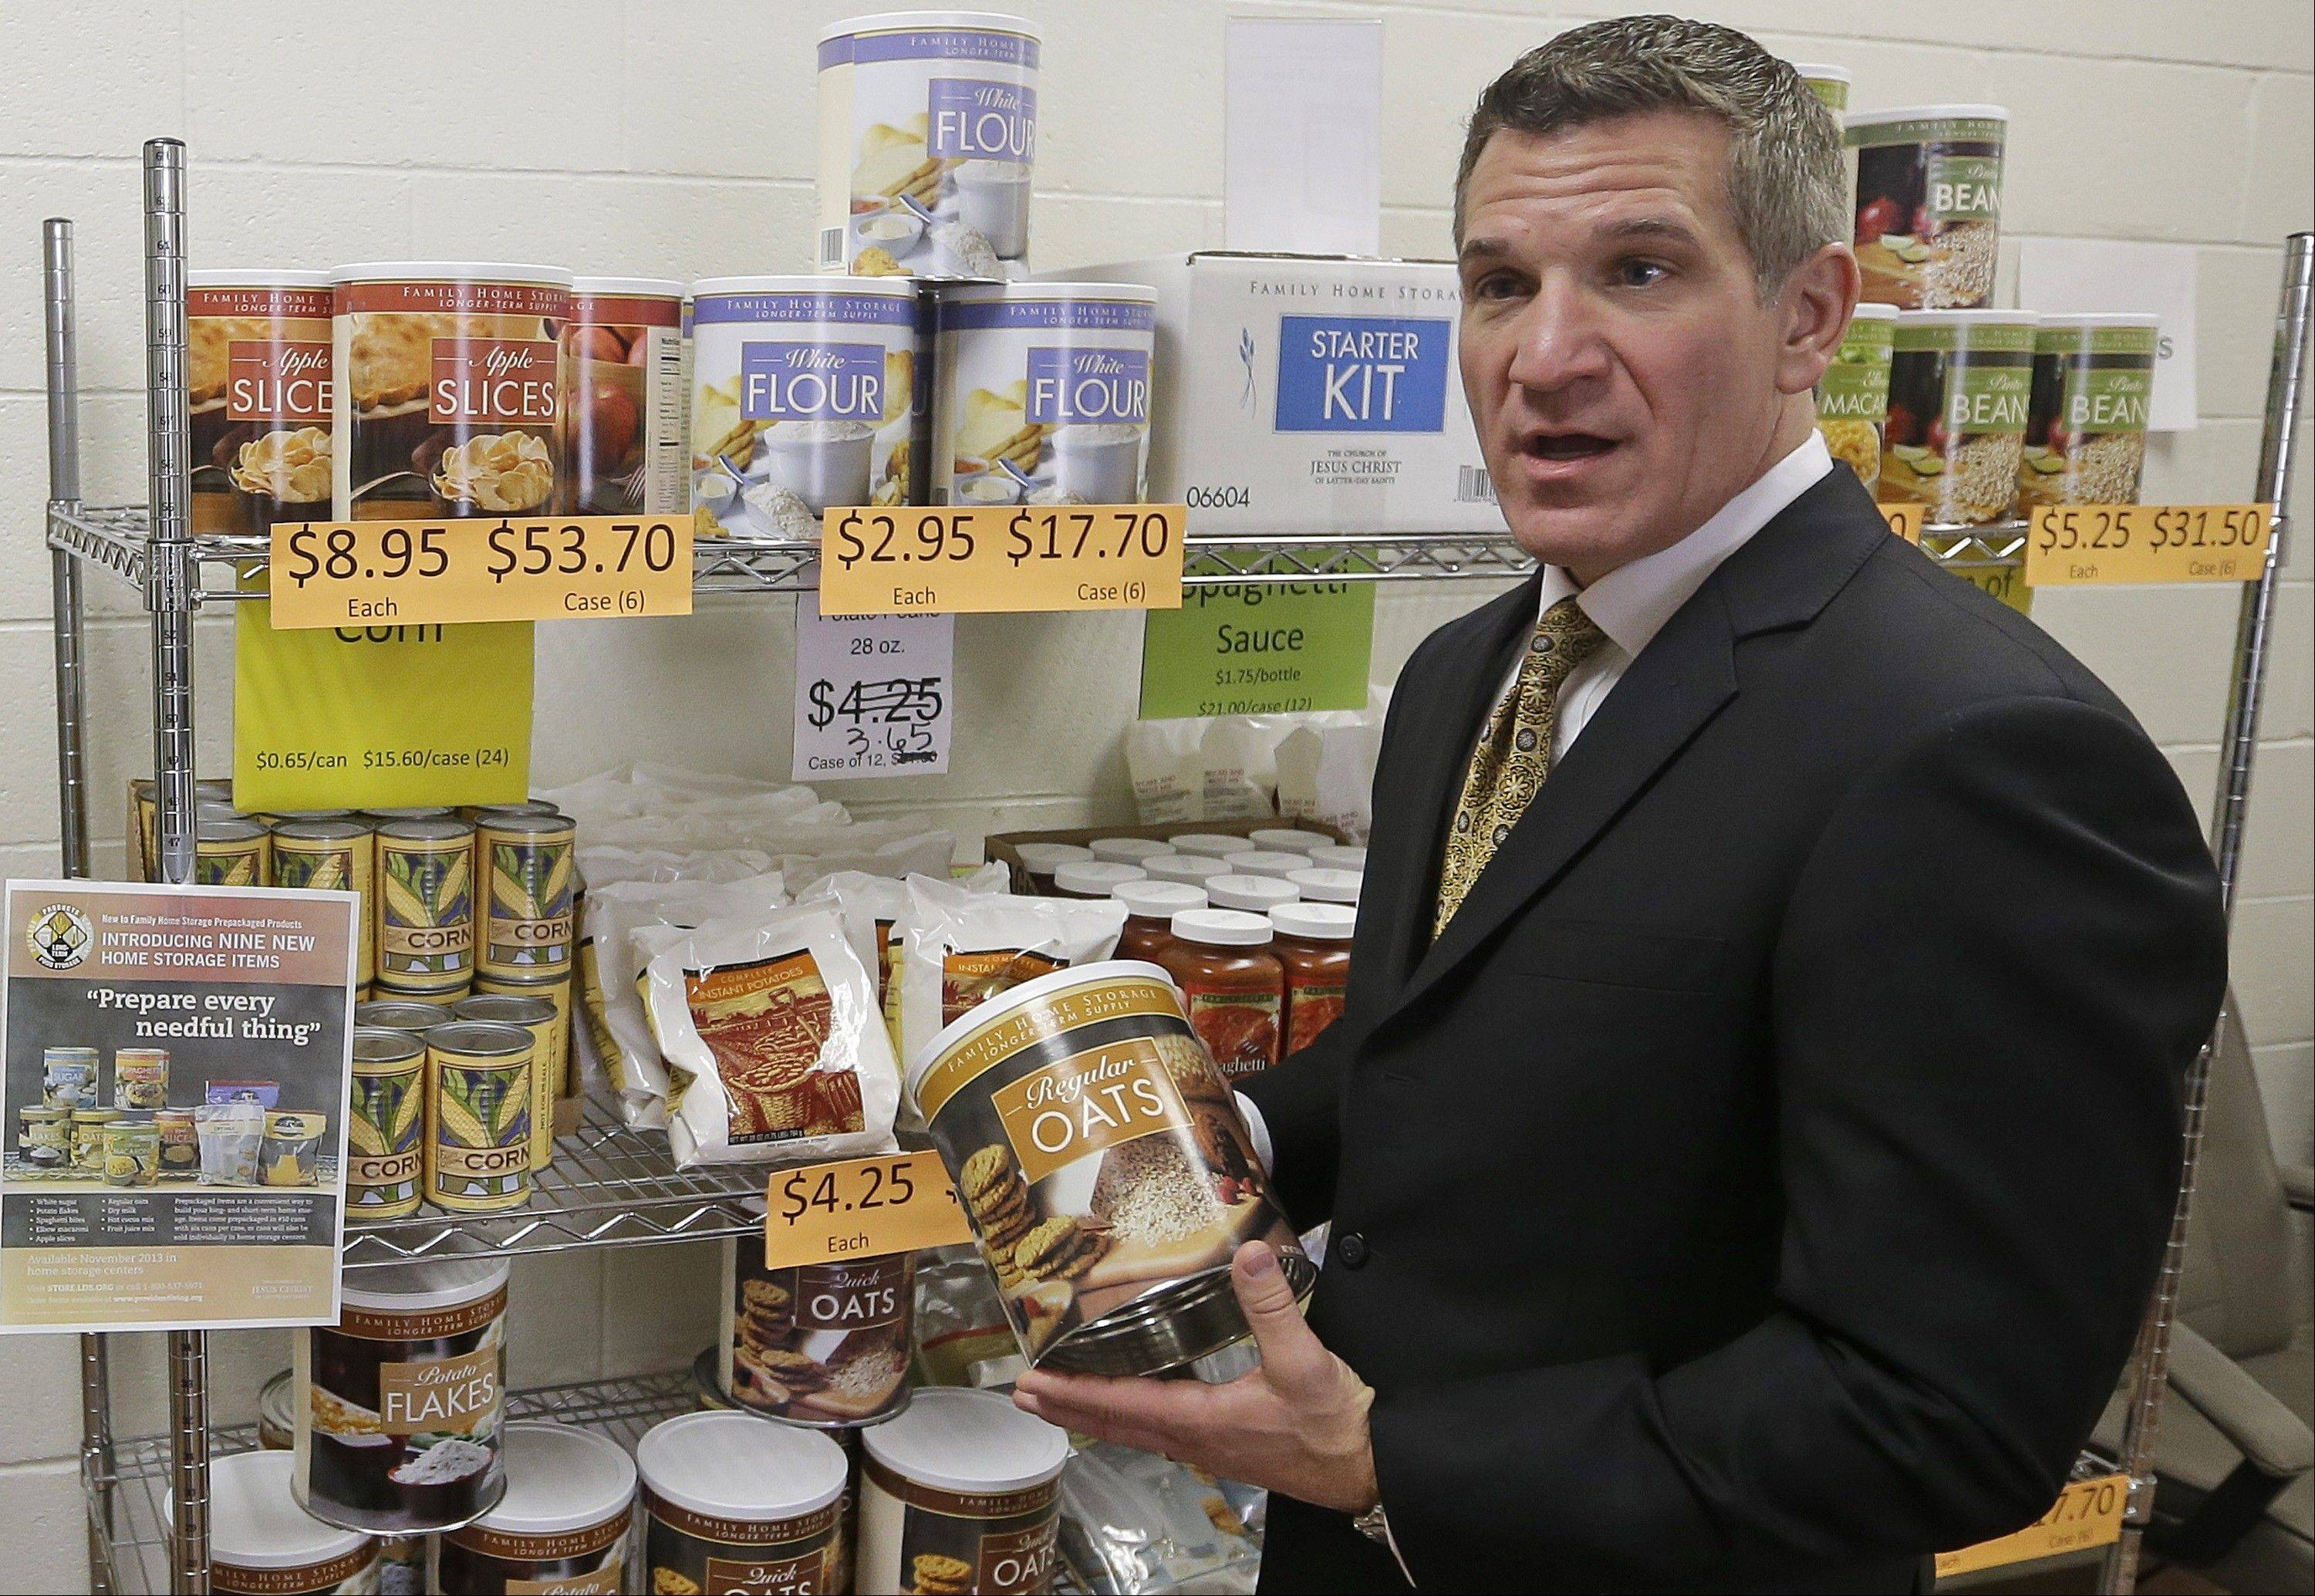 Rick Foster, manager of North America Humanitarian Services with the Church of Jesus Christ of Latter-day Saints, talks about the Mormon Church�s Welfare Square in Salt Lake City, where people can buy large cans and bags of oats, wheat, sugar, potato flakes and beans. Many Mormons buy items from this center as they compile a three-month supply of food, while also storing away food that can last as long as 30 years.